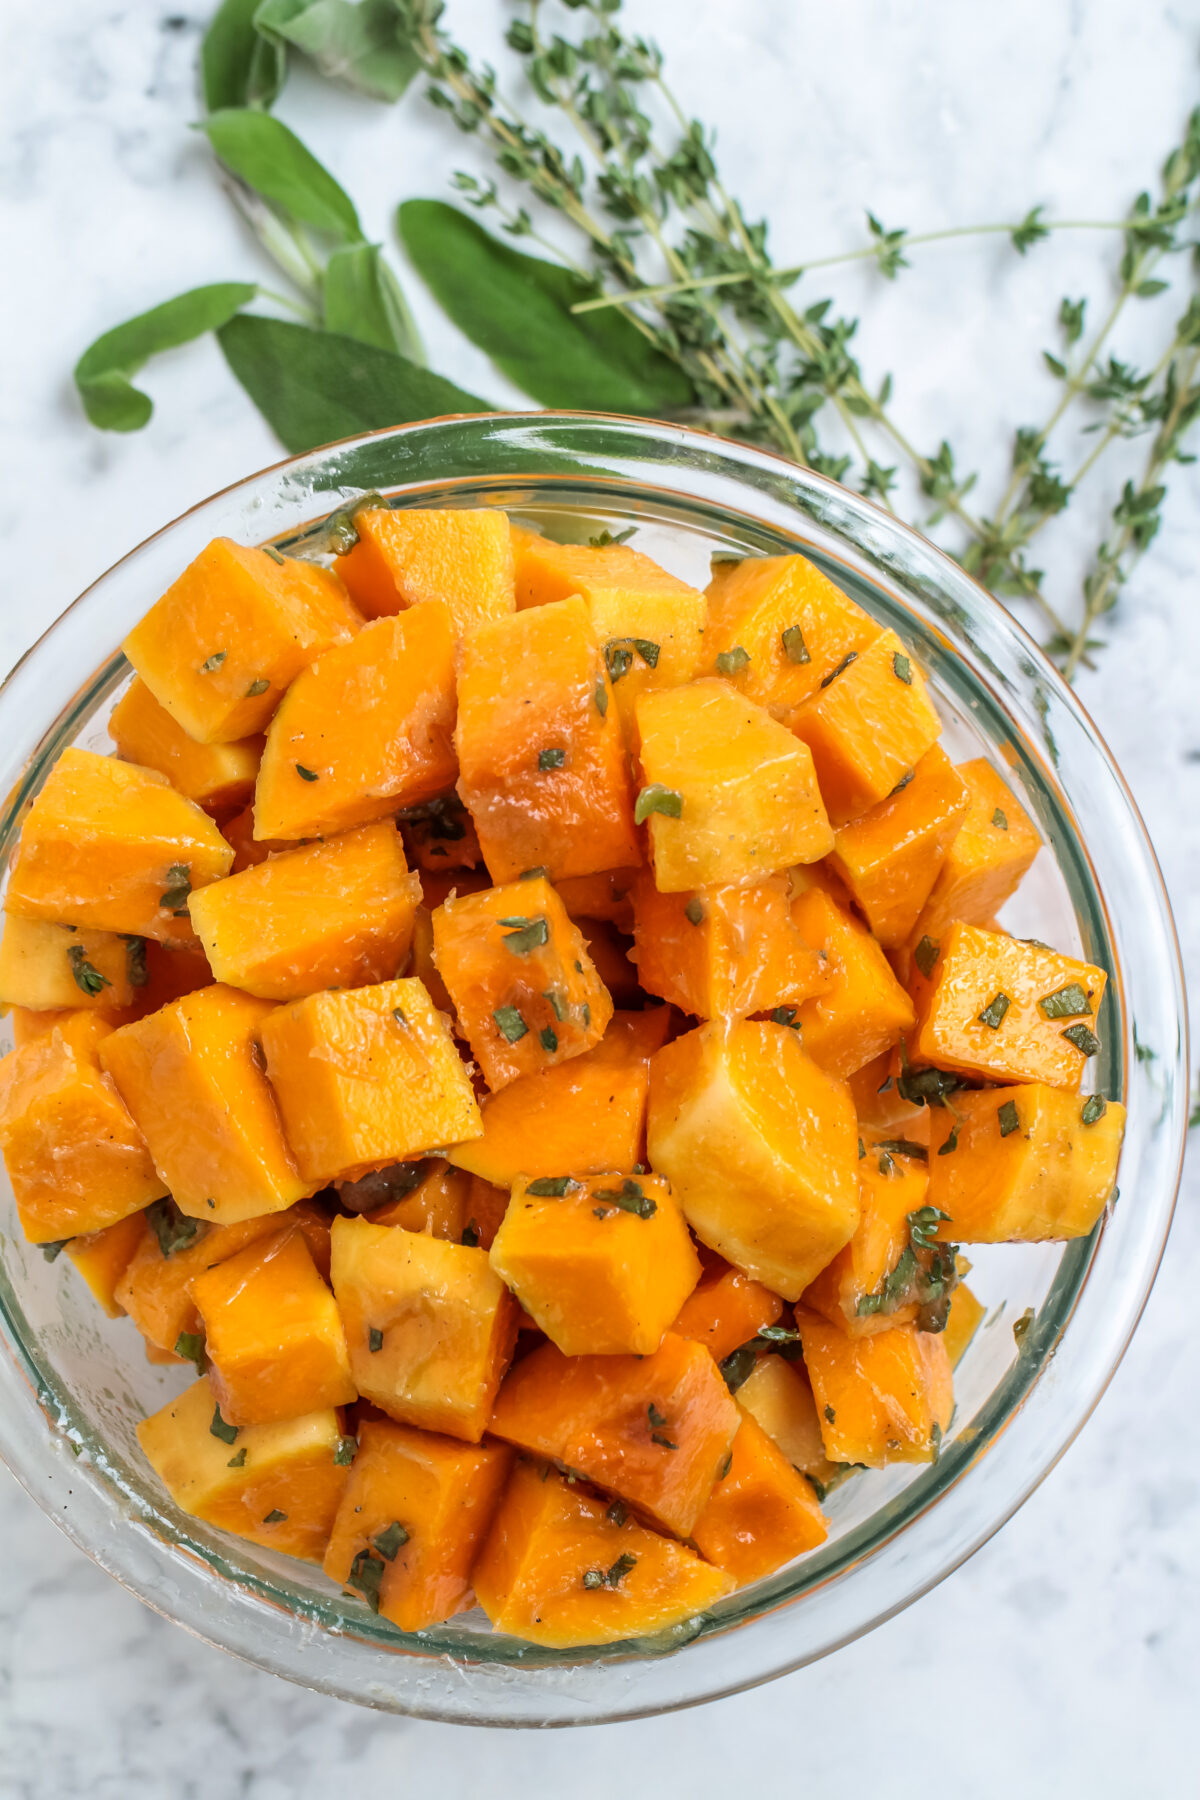 Squash cubes coated in butter mixture.